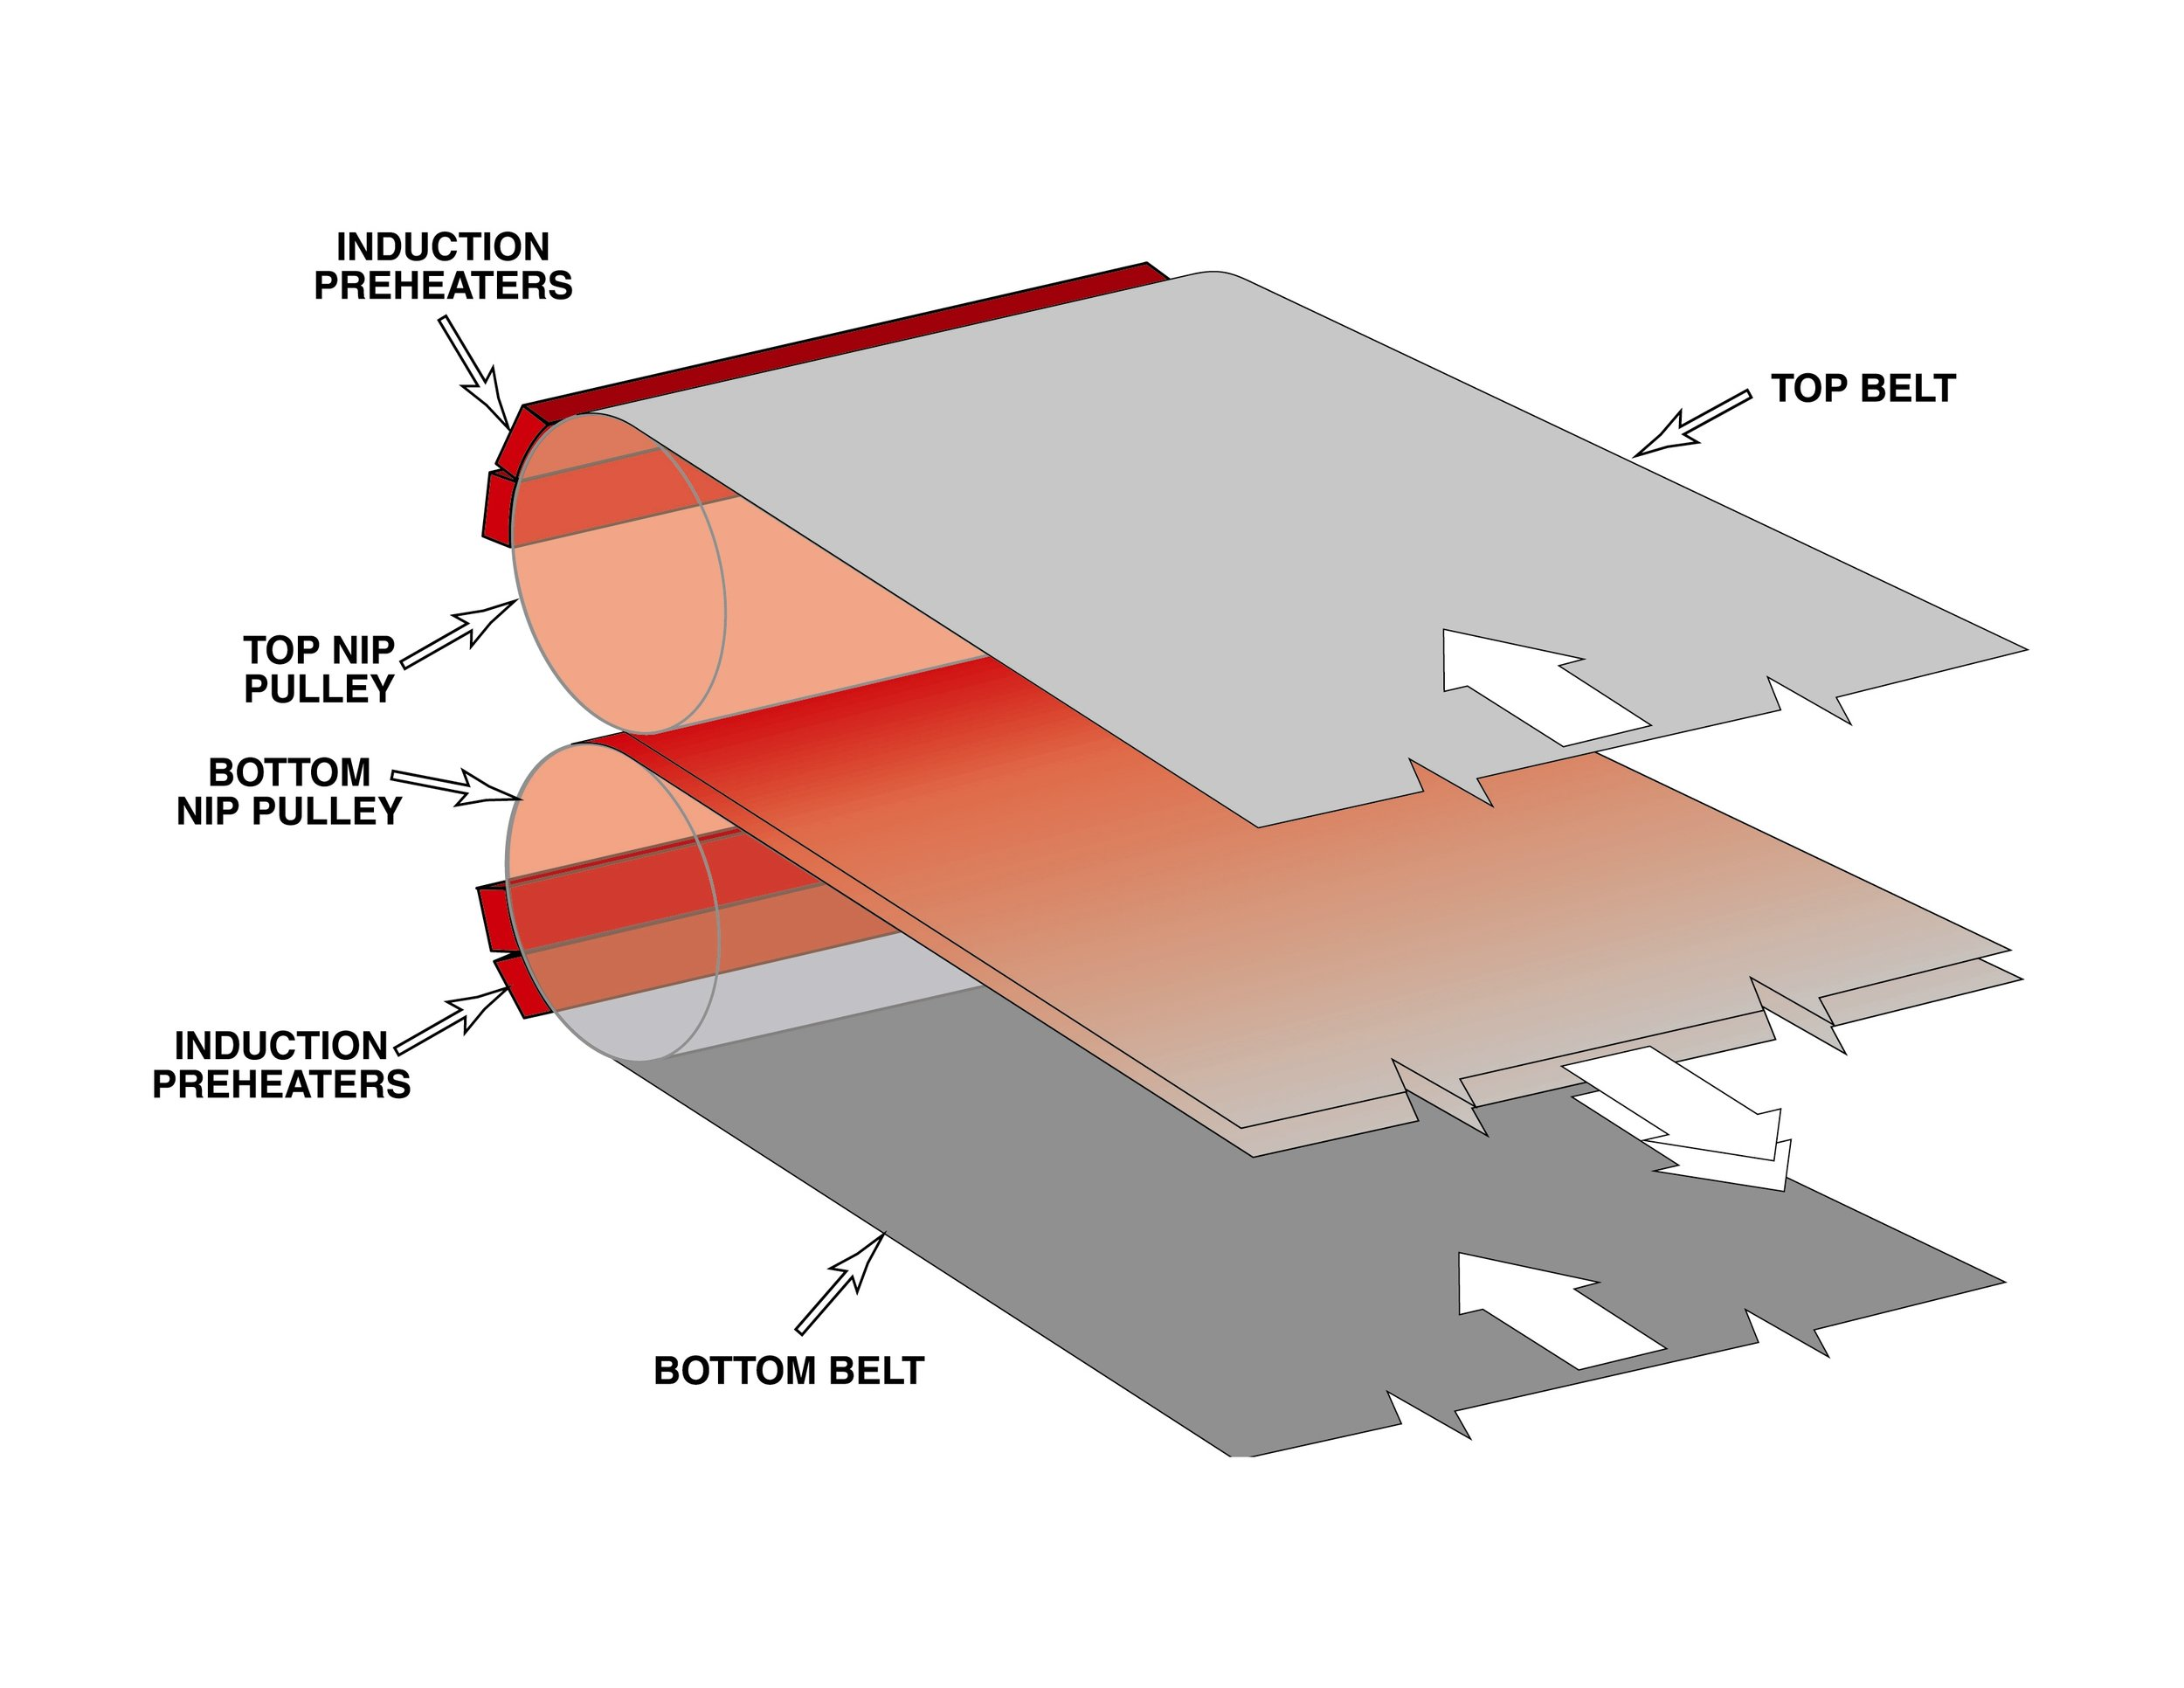 Induction preheating schematic